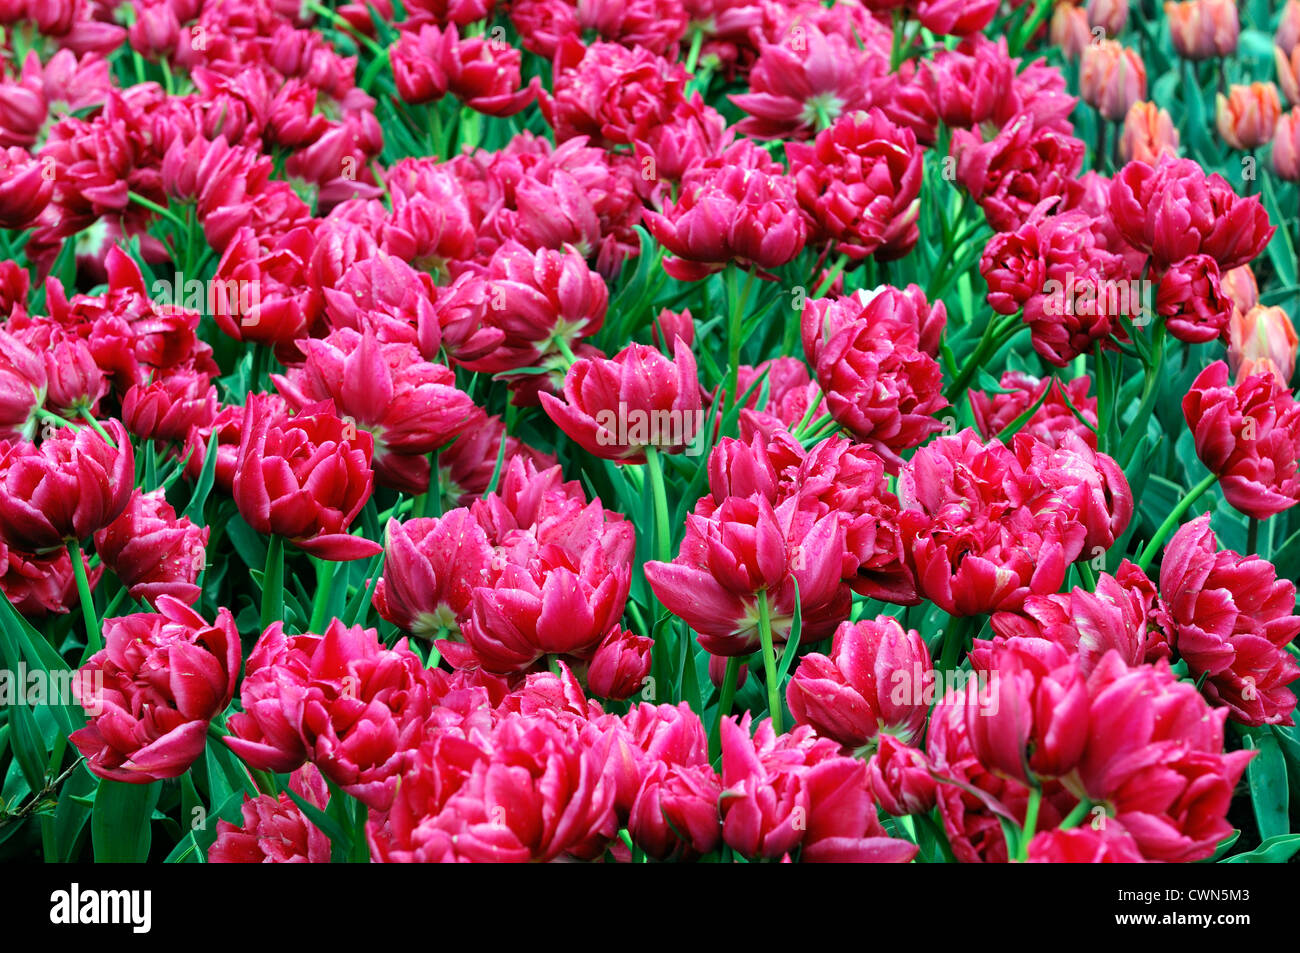 Early Spring Flower Display Stock Photos & Early Spring Flower ...